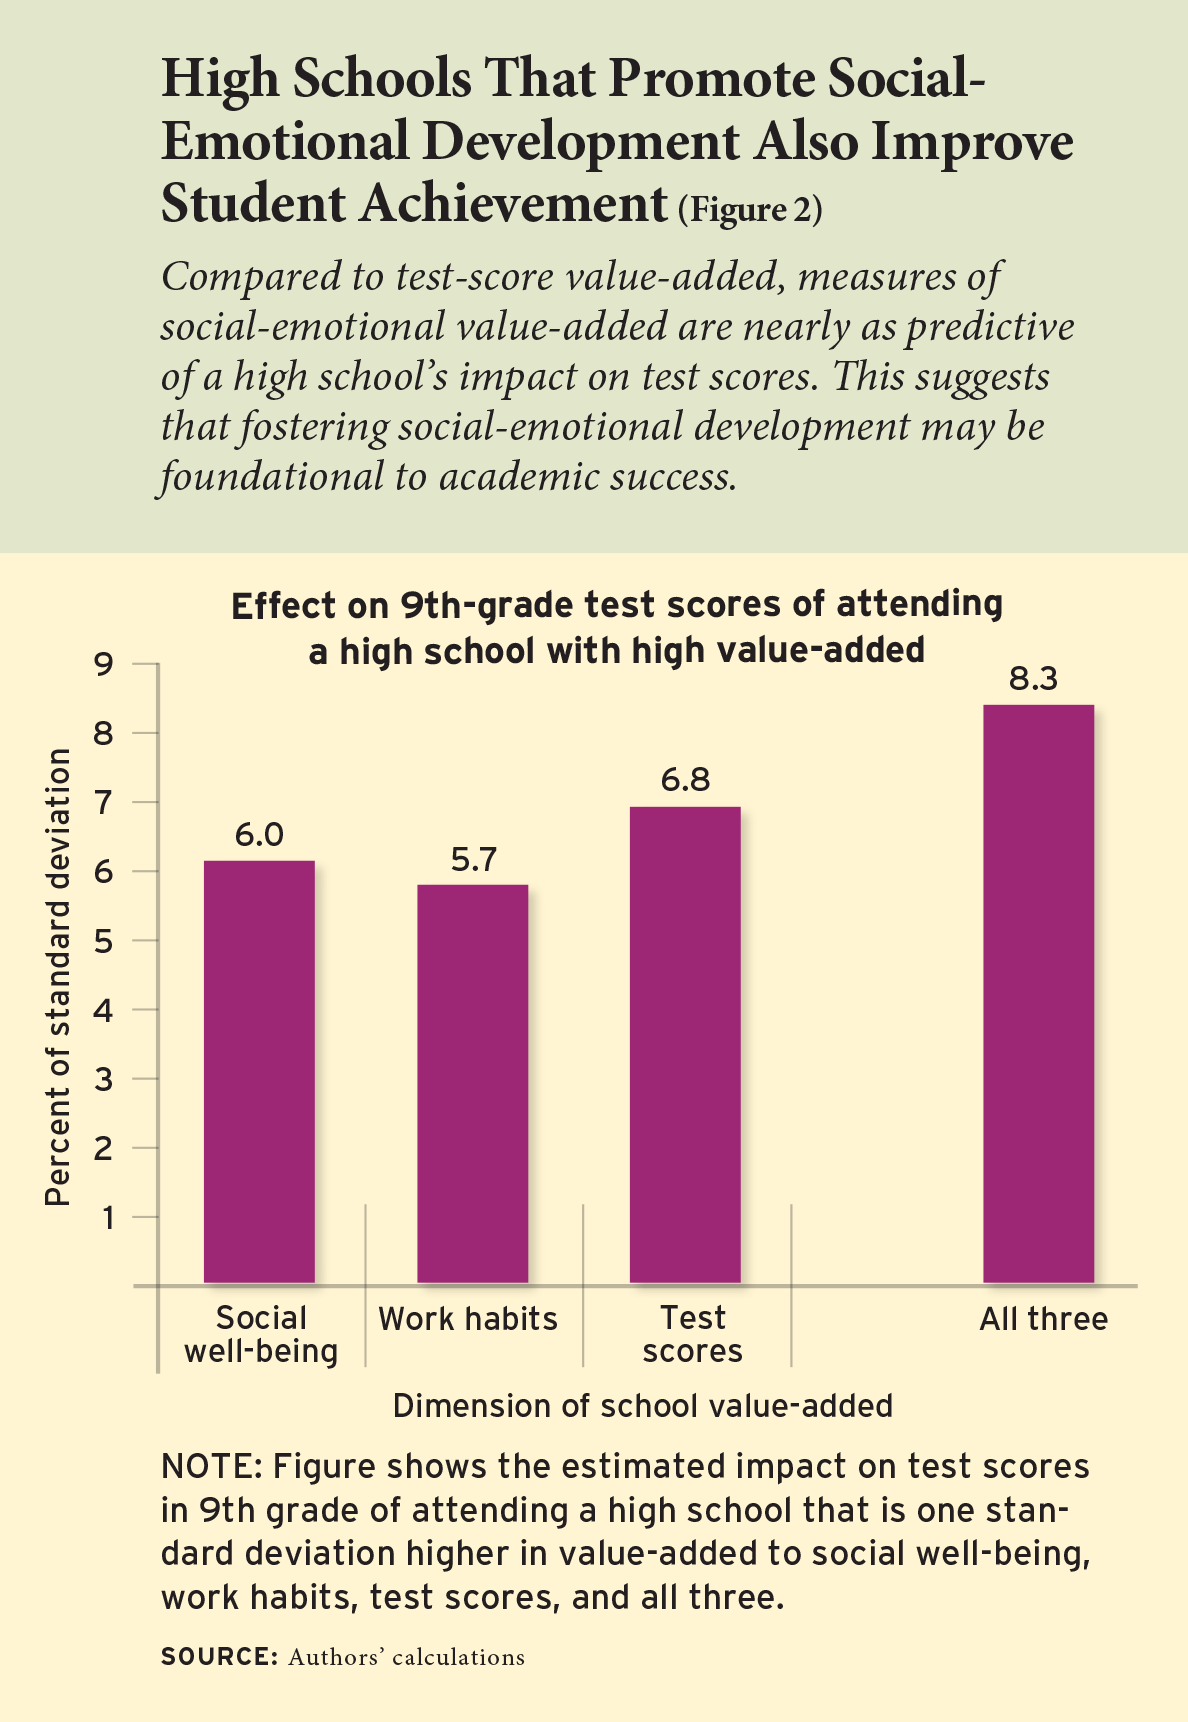 Figure 2: High Schools That Promote Social- Emotional Development Also Improve Student Achievement